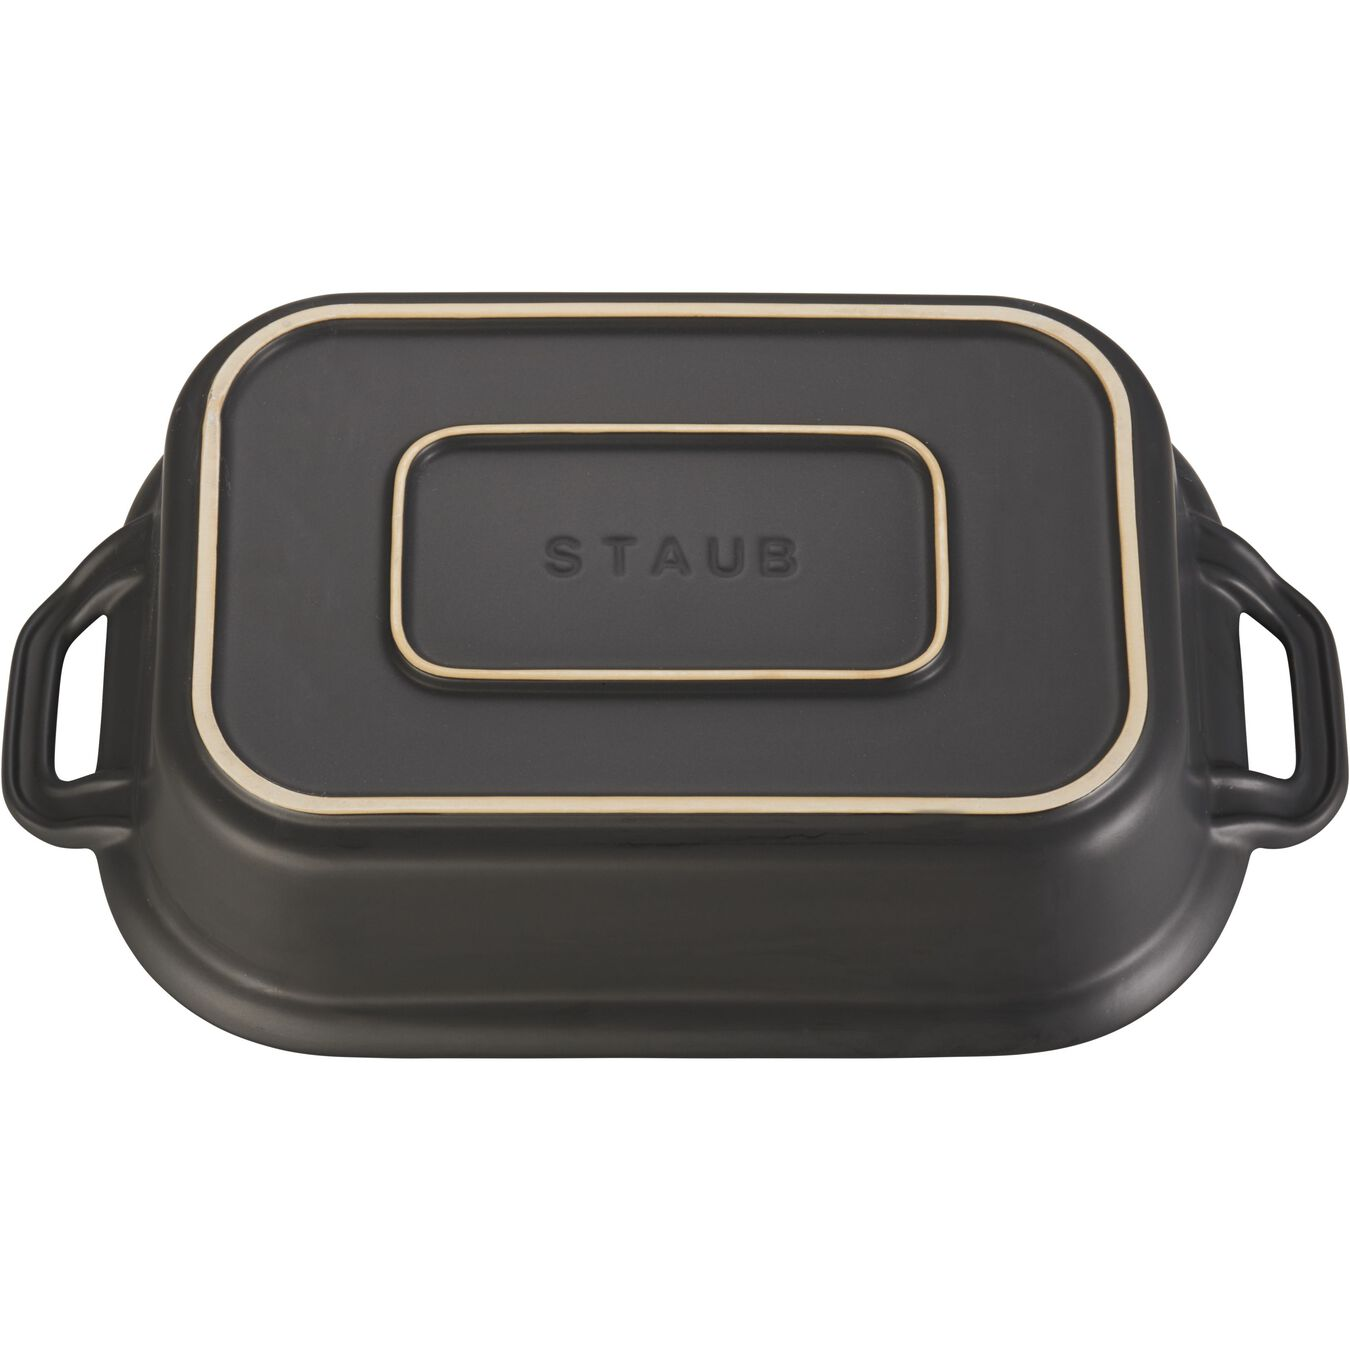 Ceramic rectangular Special shape bakeware, Black,,large 3